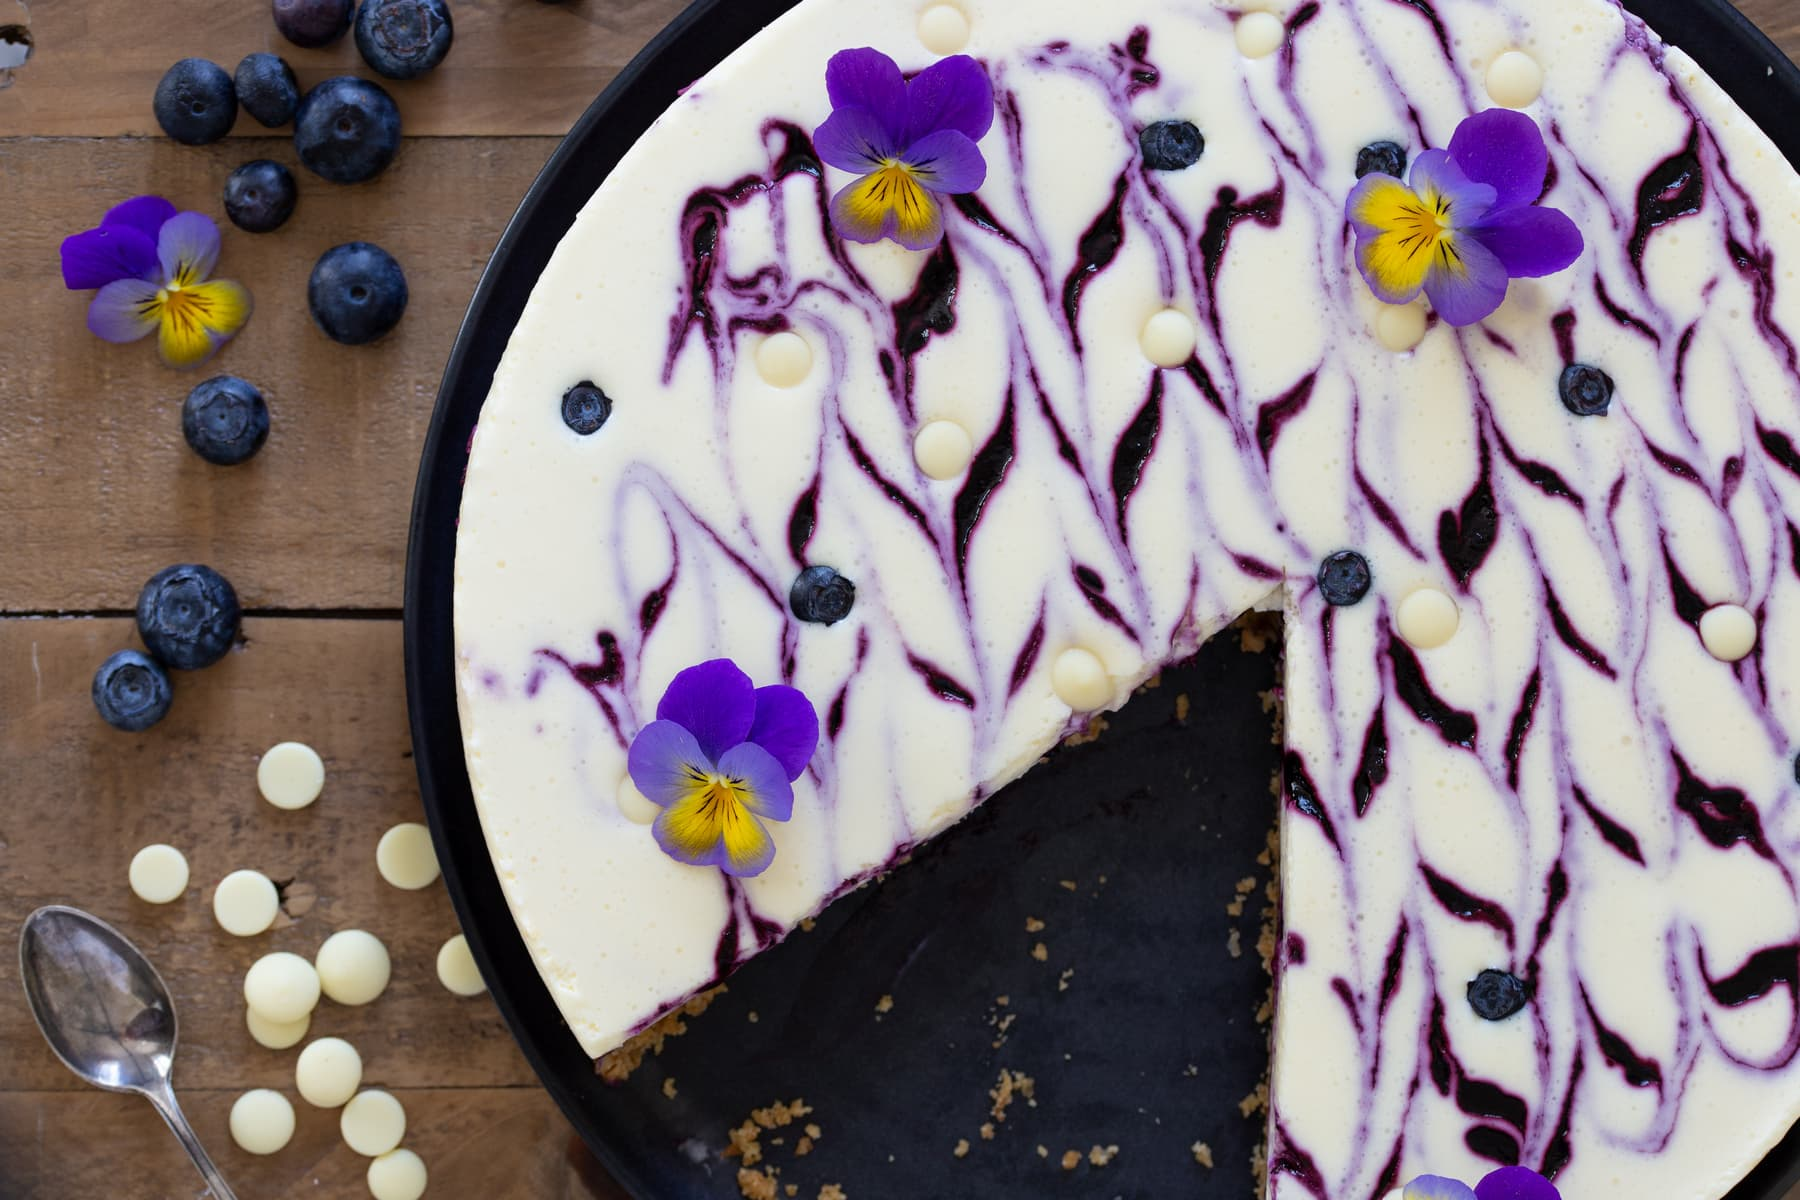 Overhead view of blueberry white chocolate no-bake cheesecake.